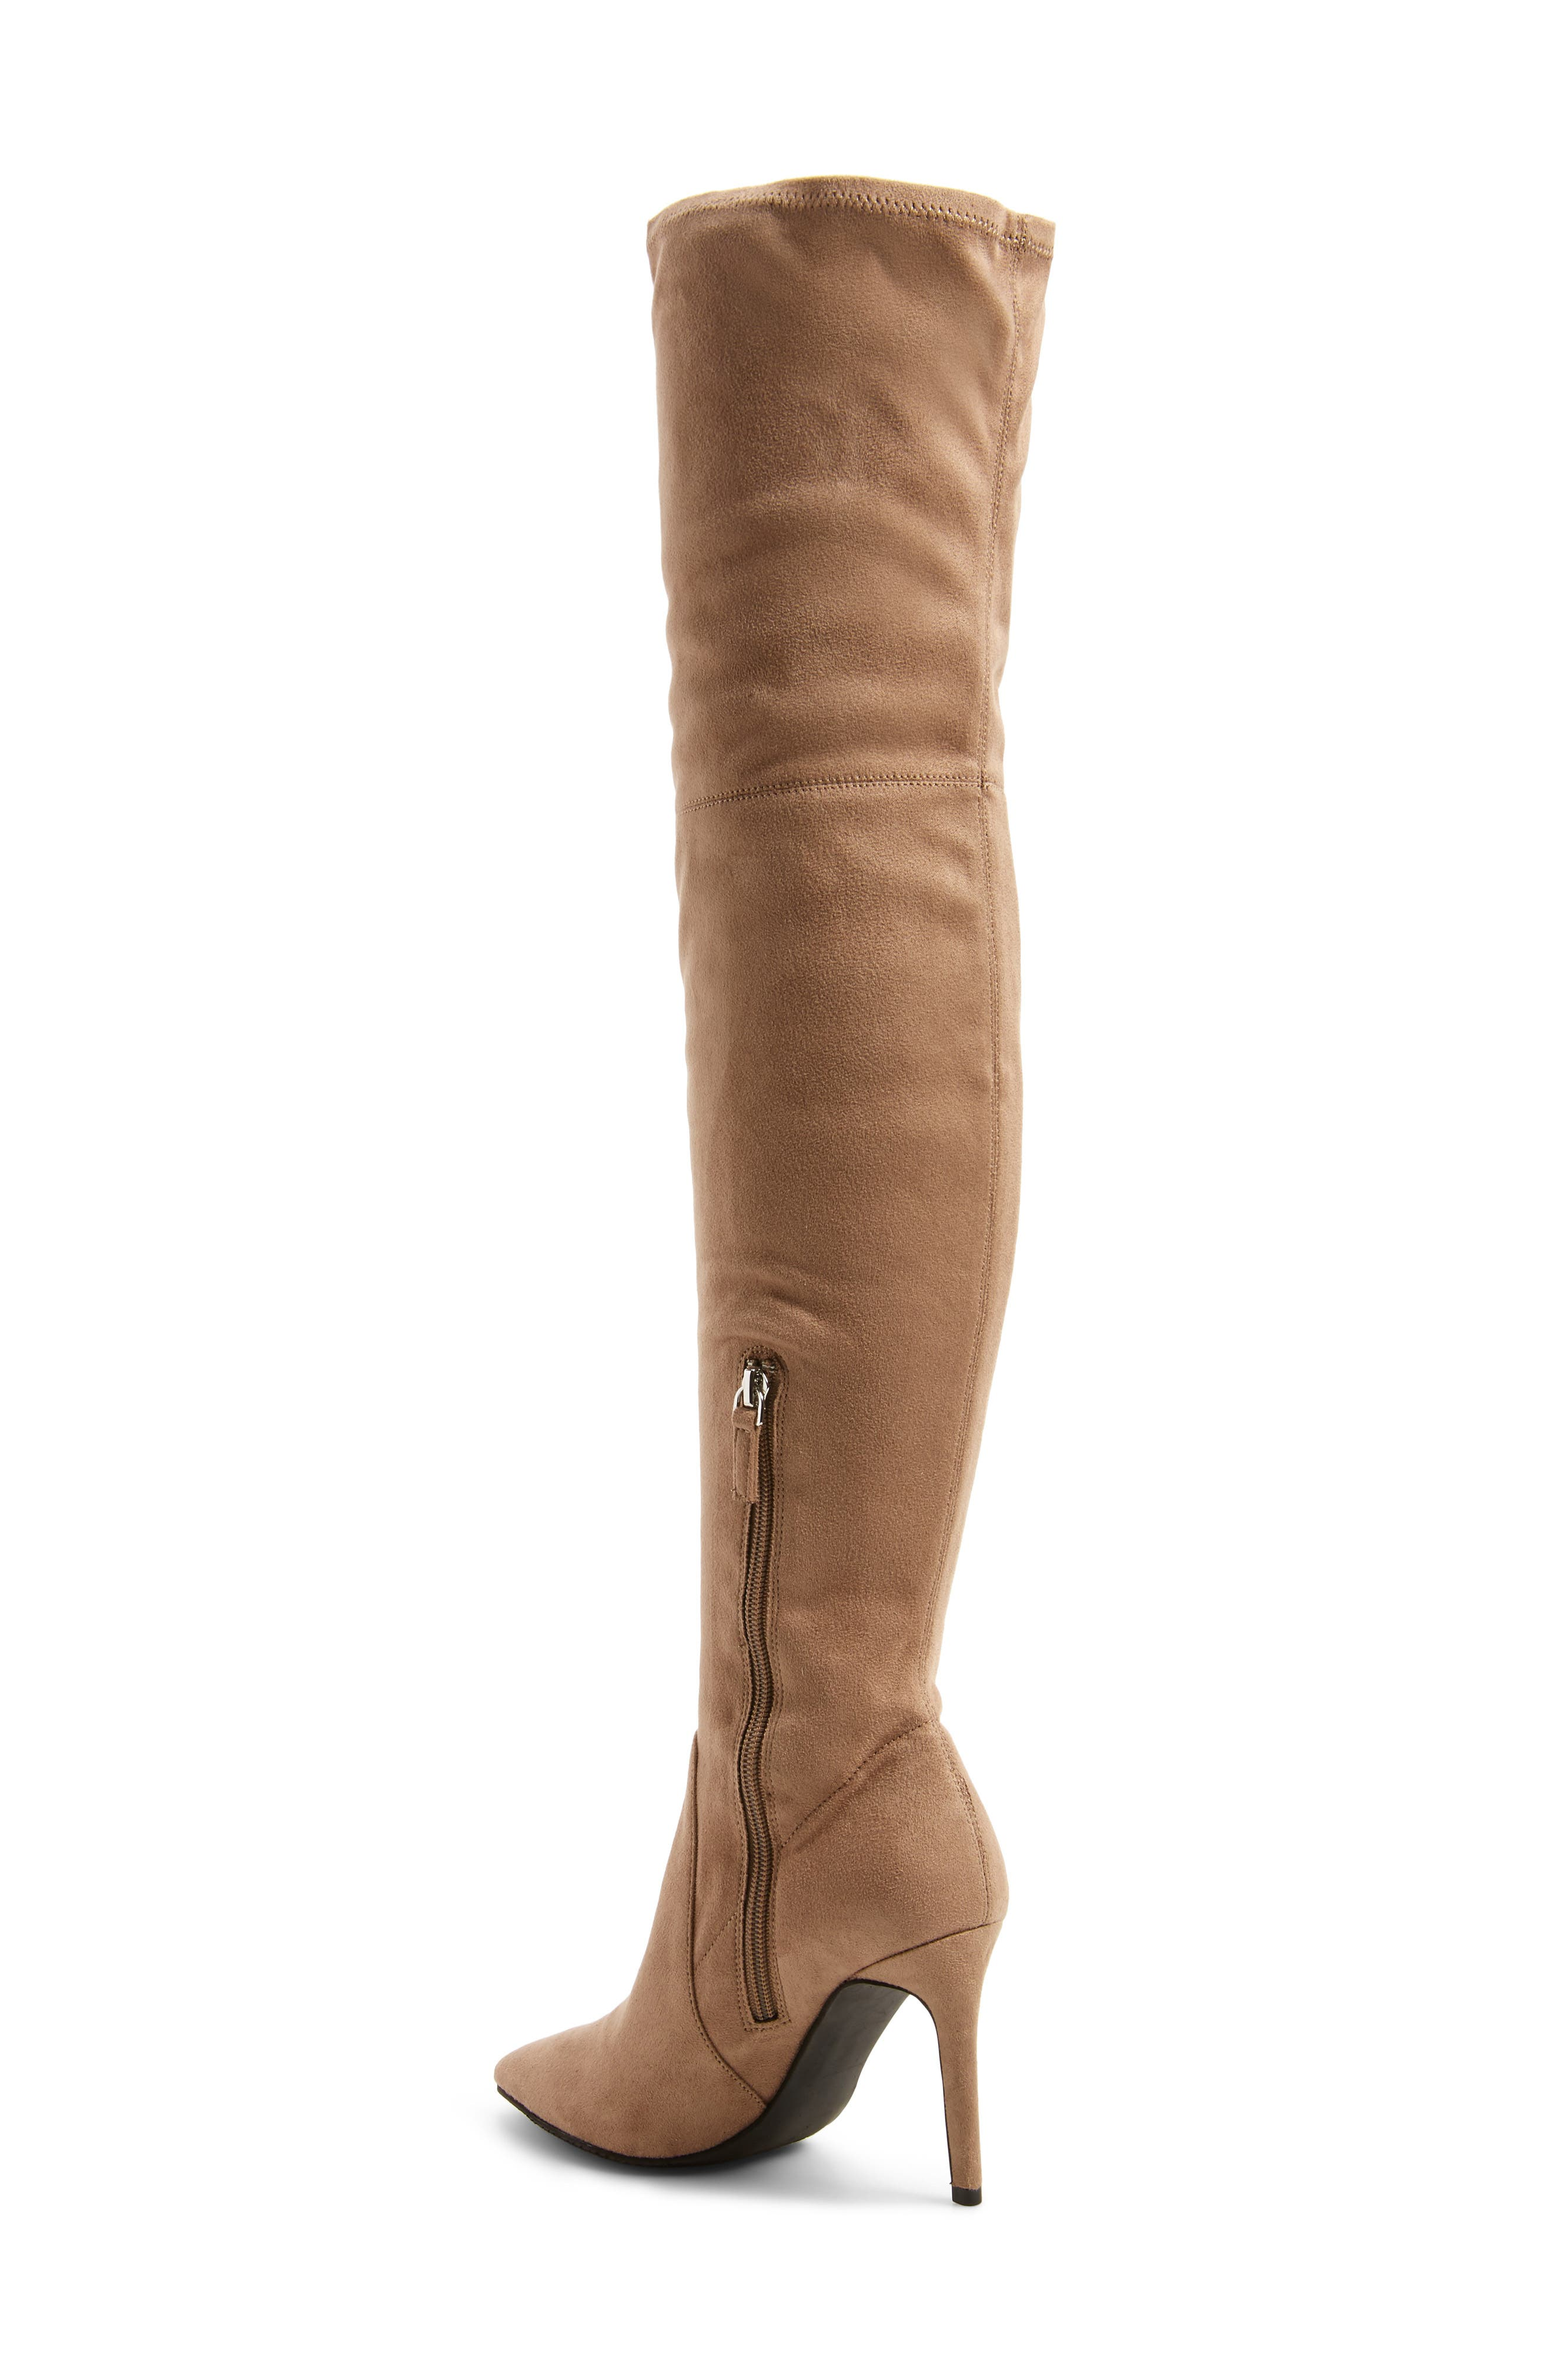 Fab Nara Over the Knee Boot,                             Alternate thumbnail 2, color,                             260